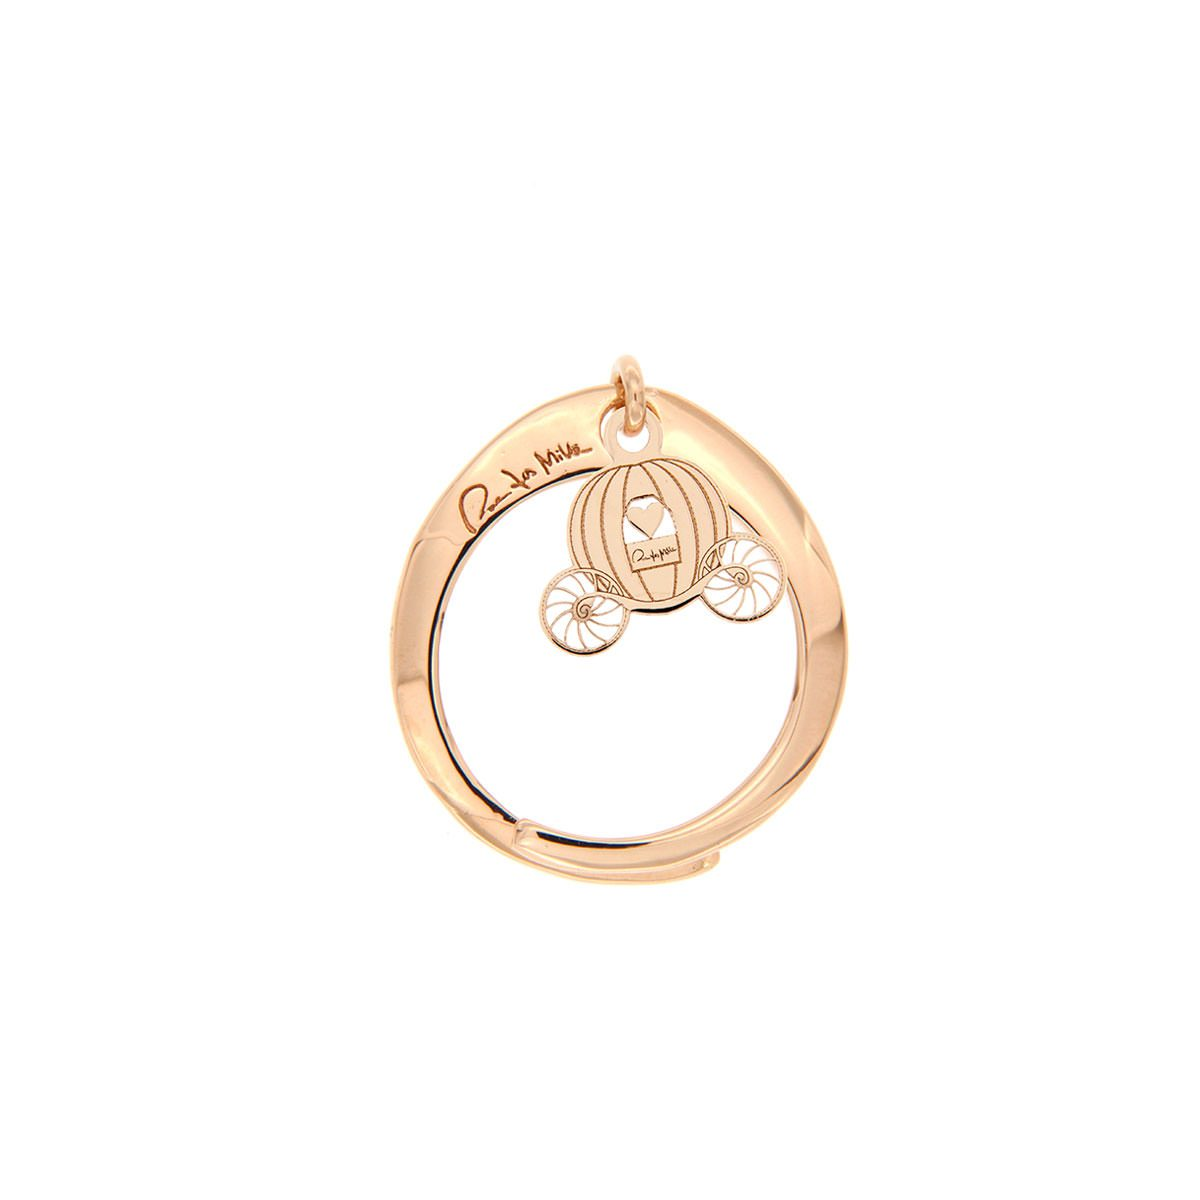 Rings - Carriage Rigid Ring - 1 | Rue des Mille